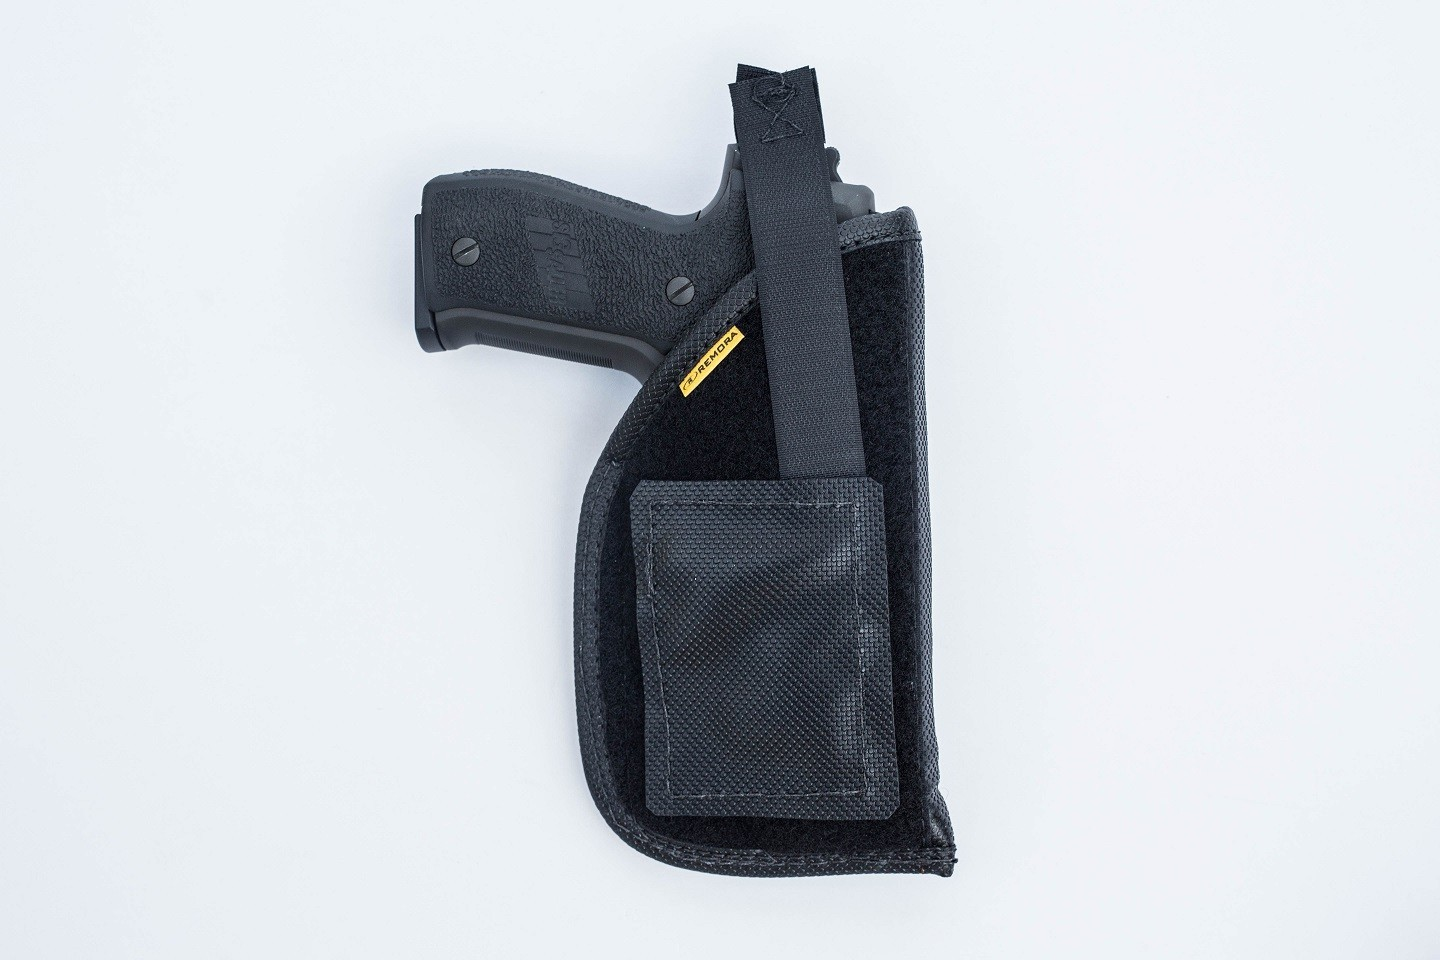 SHOULDER RIG-REMORA SERIES-10 HOLSTER